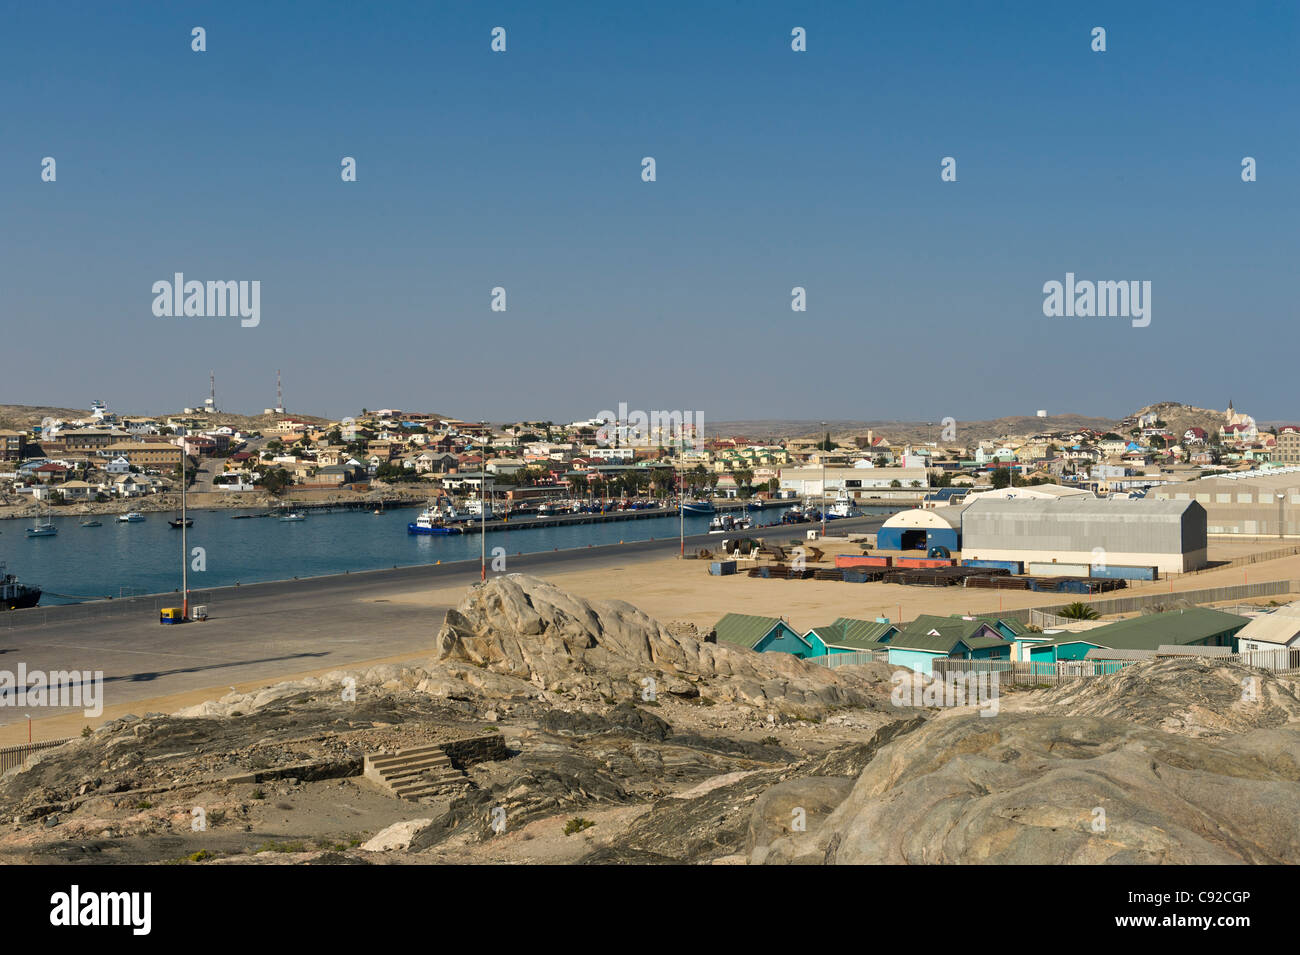 Luederitz harbor and parts of the town Namibia - Stock Image